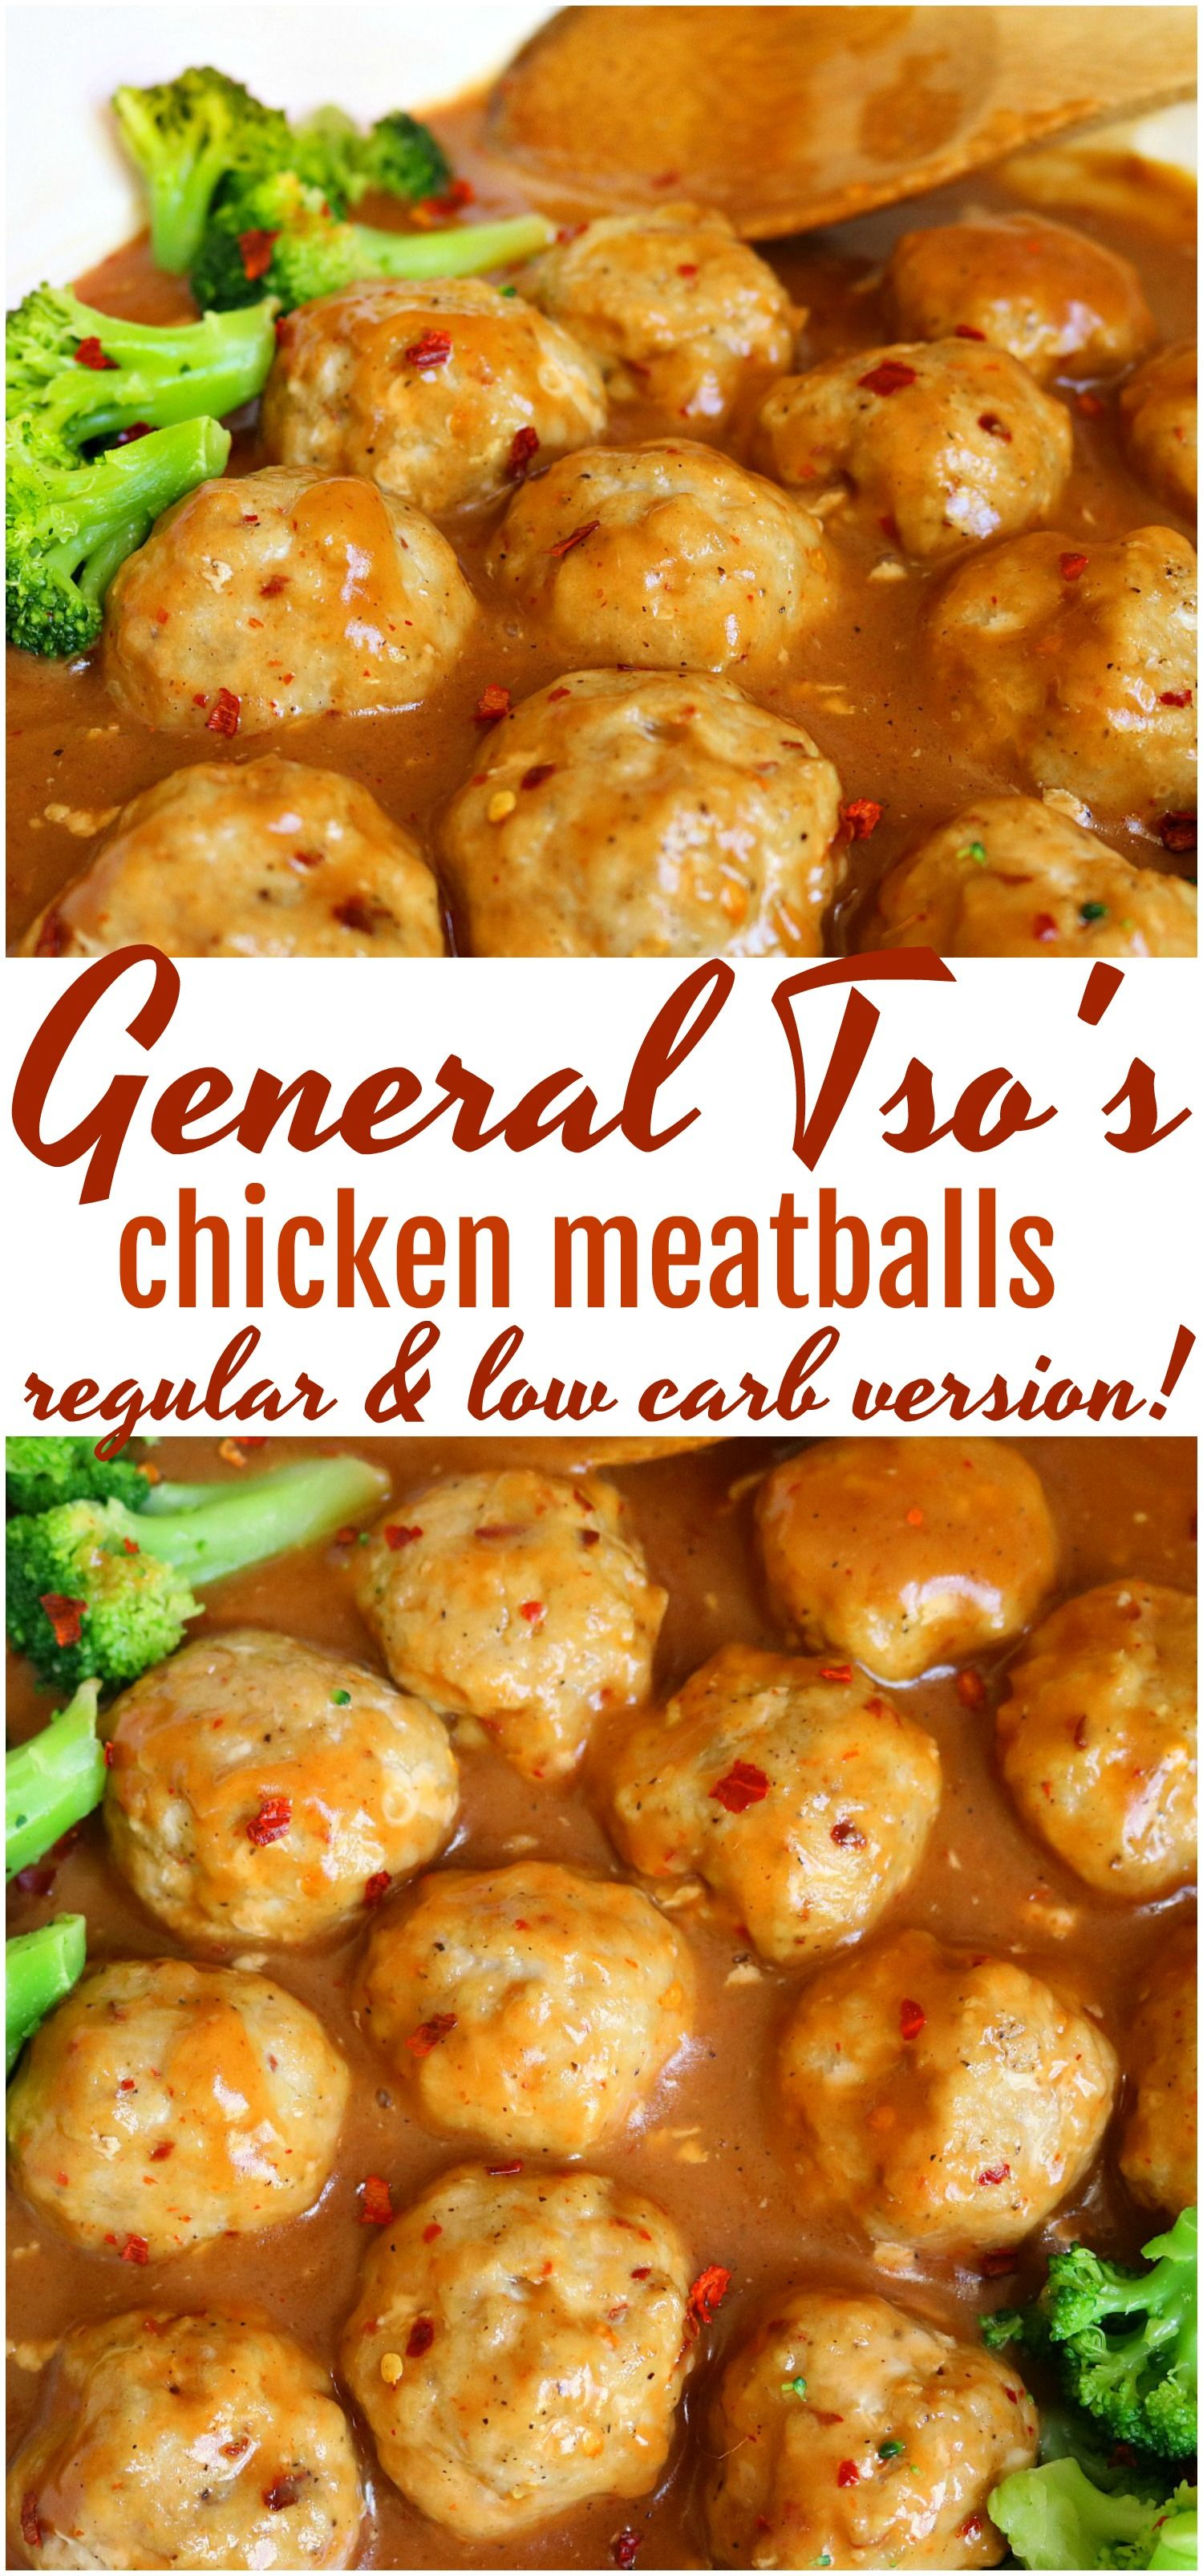 General Tso Chicken Meatballs- Regular and Low Carb Version